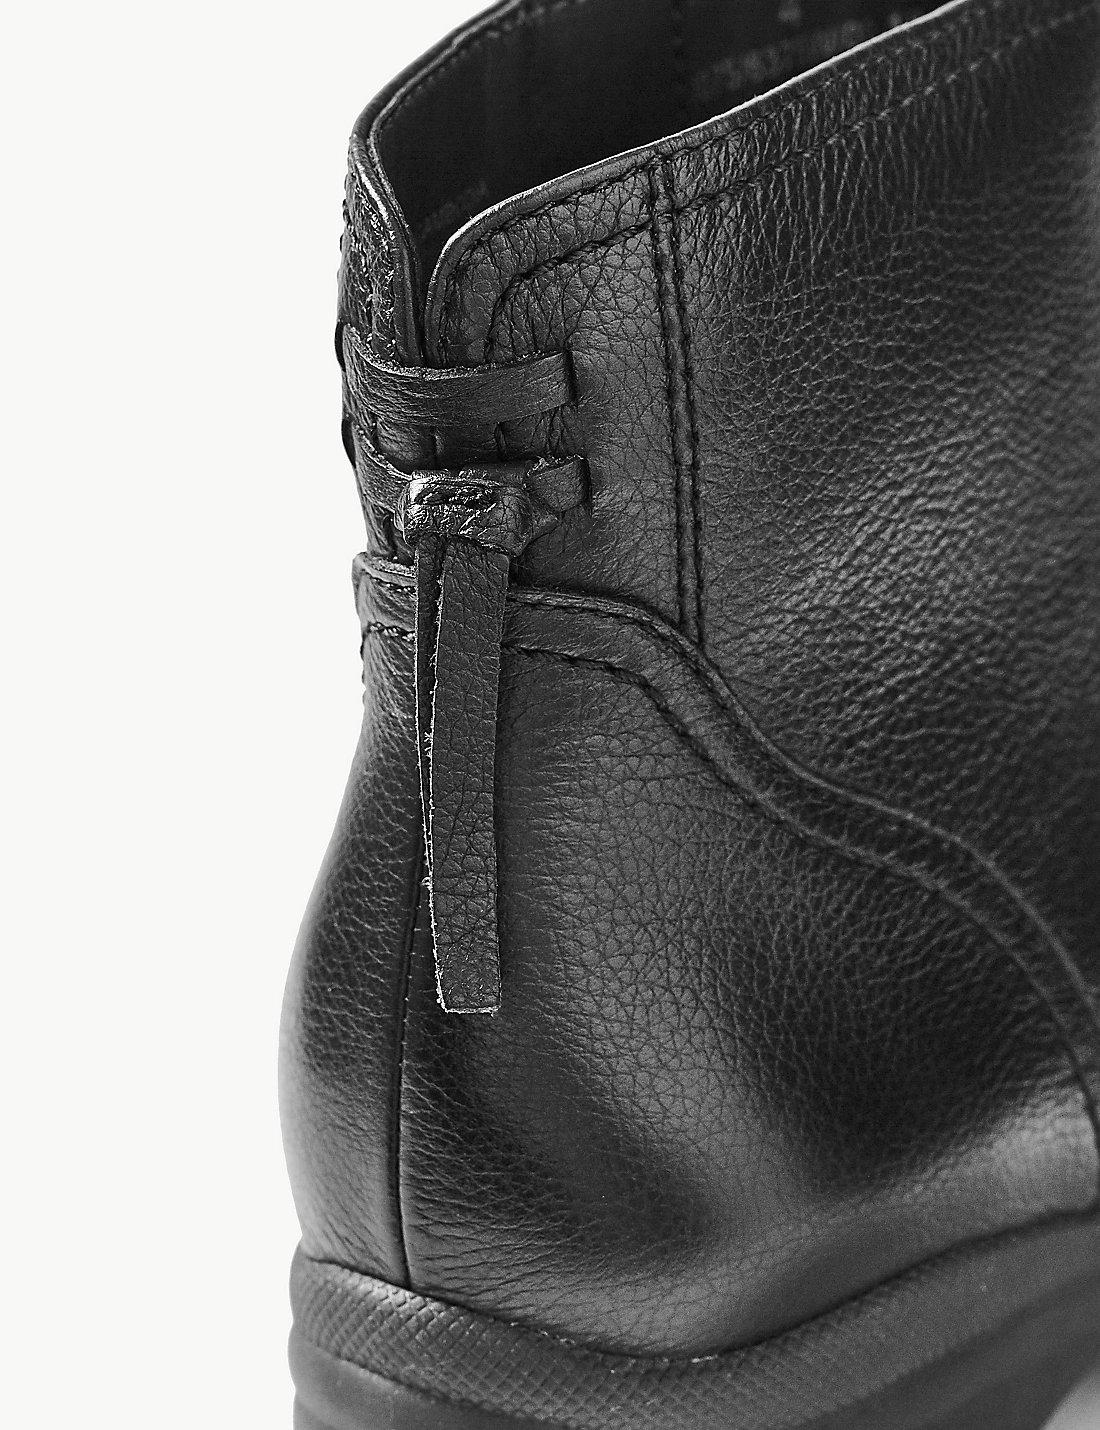 21f13c2fe6f3 Marks   Spencer - Black Wide Fit Leather Wedge Heel Ankle Boots - Lyst.  View fullscreen